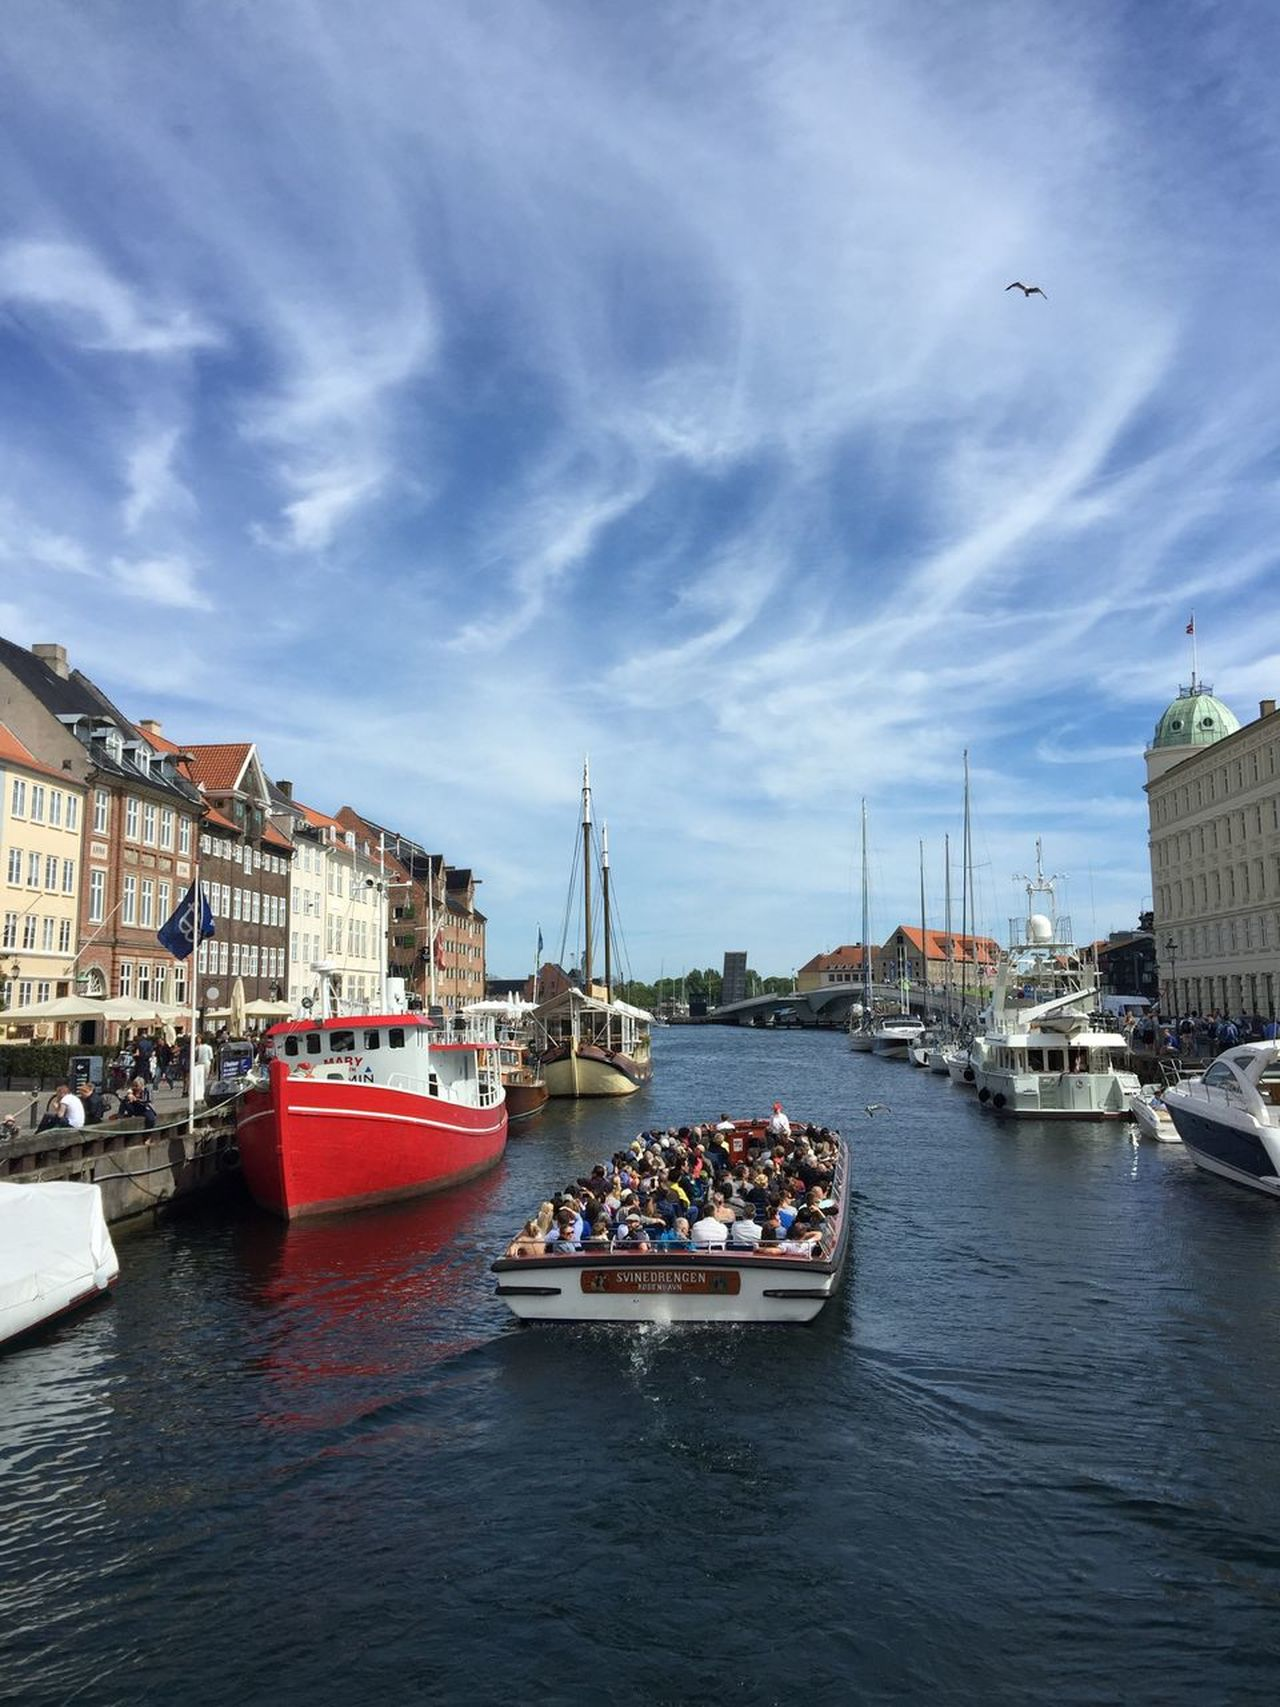 Nautical Vessel Transportation Architecture Built Structure Building Exterior Water Sky River Mode Of Transport Waterfront Day Cloud - Sky City Outdoors Harbor Travel Destinations Moored No People Nature Nyhavn Copenhagen